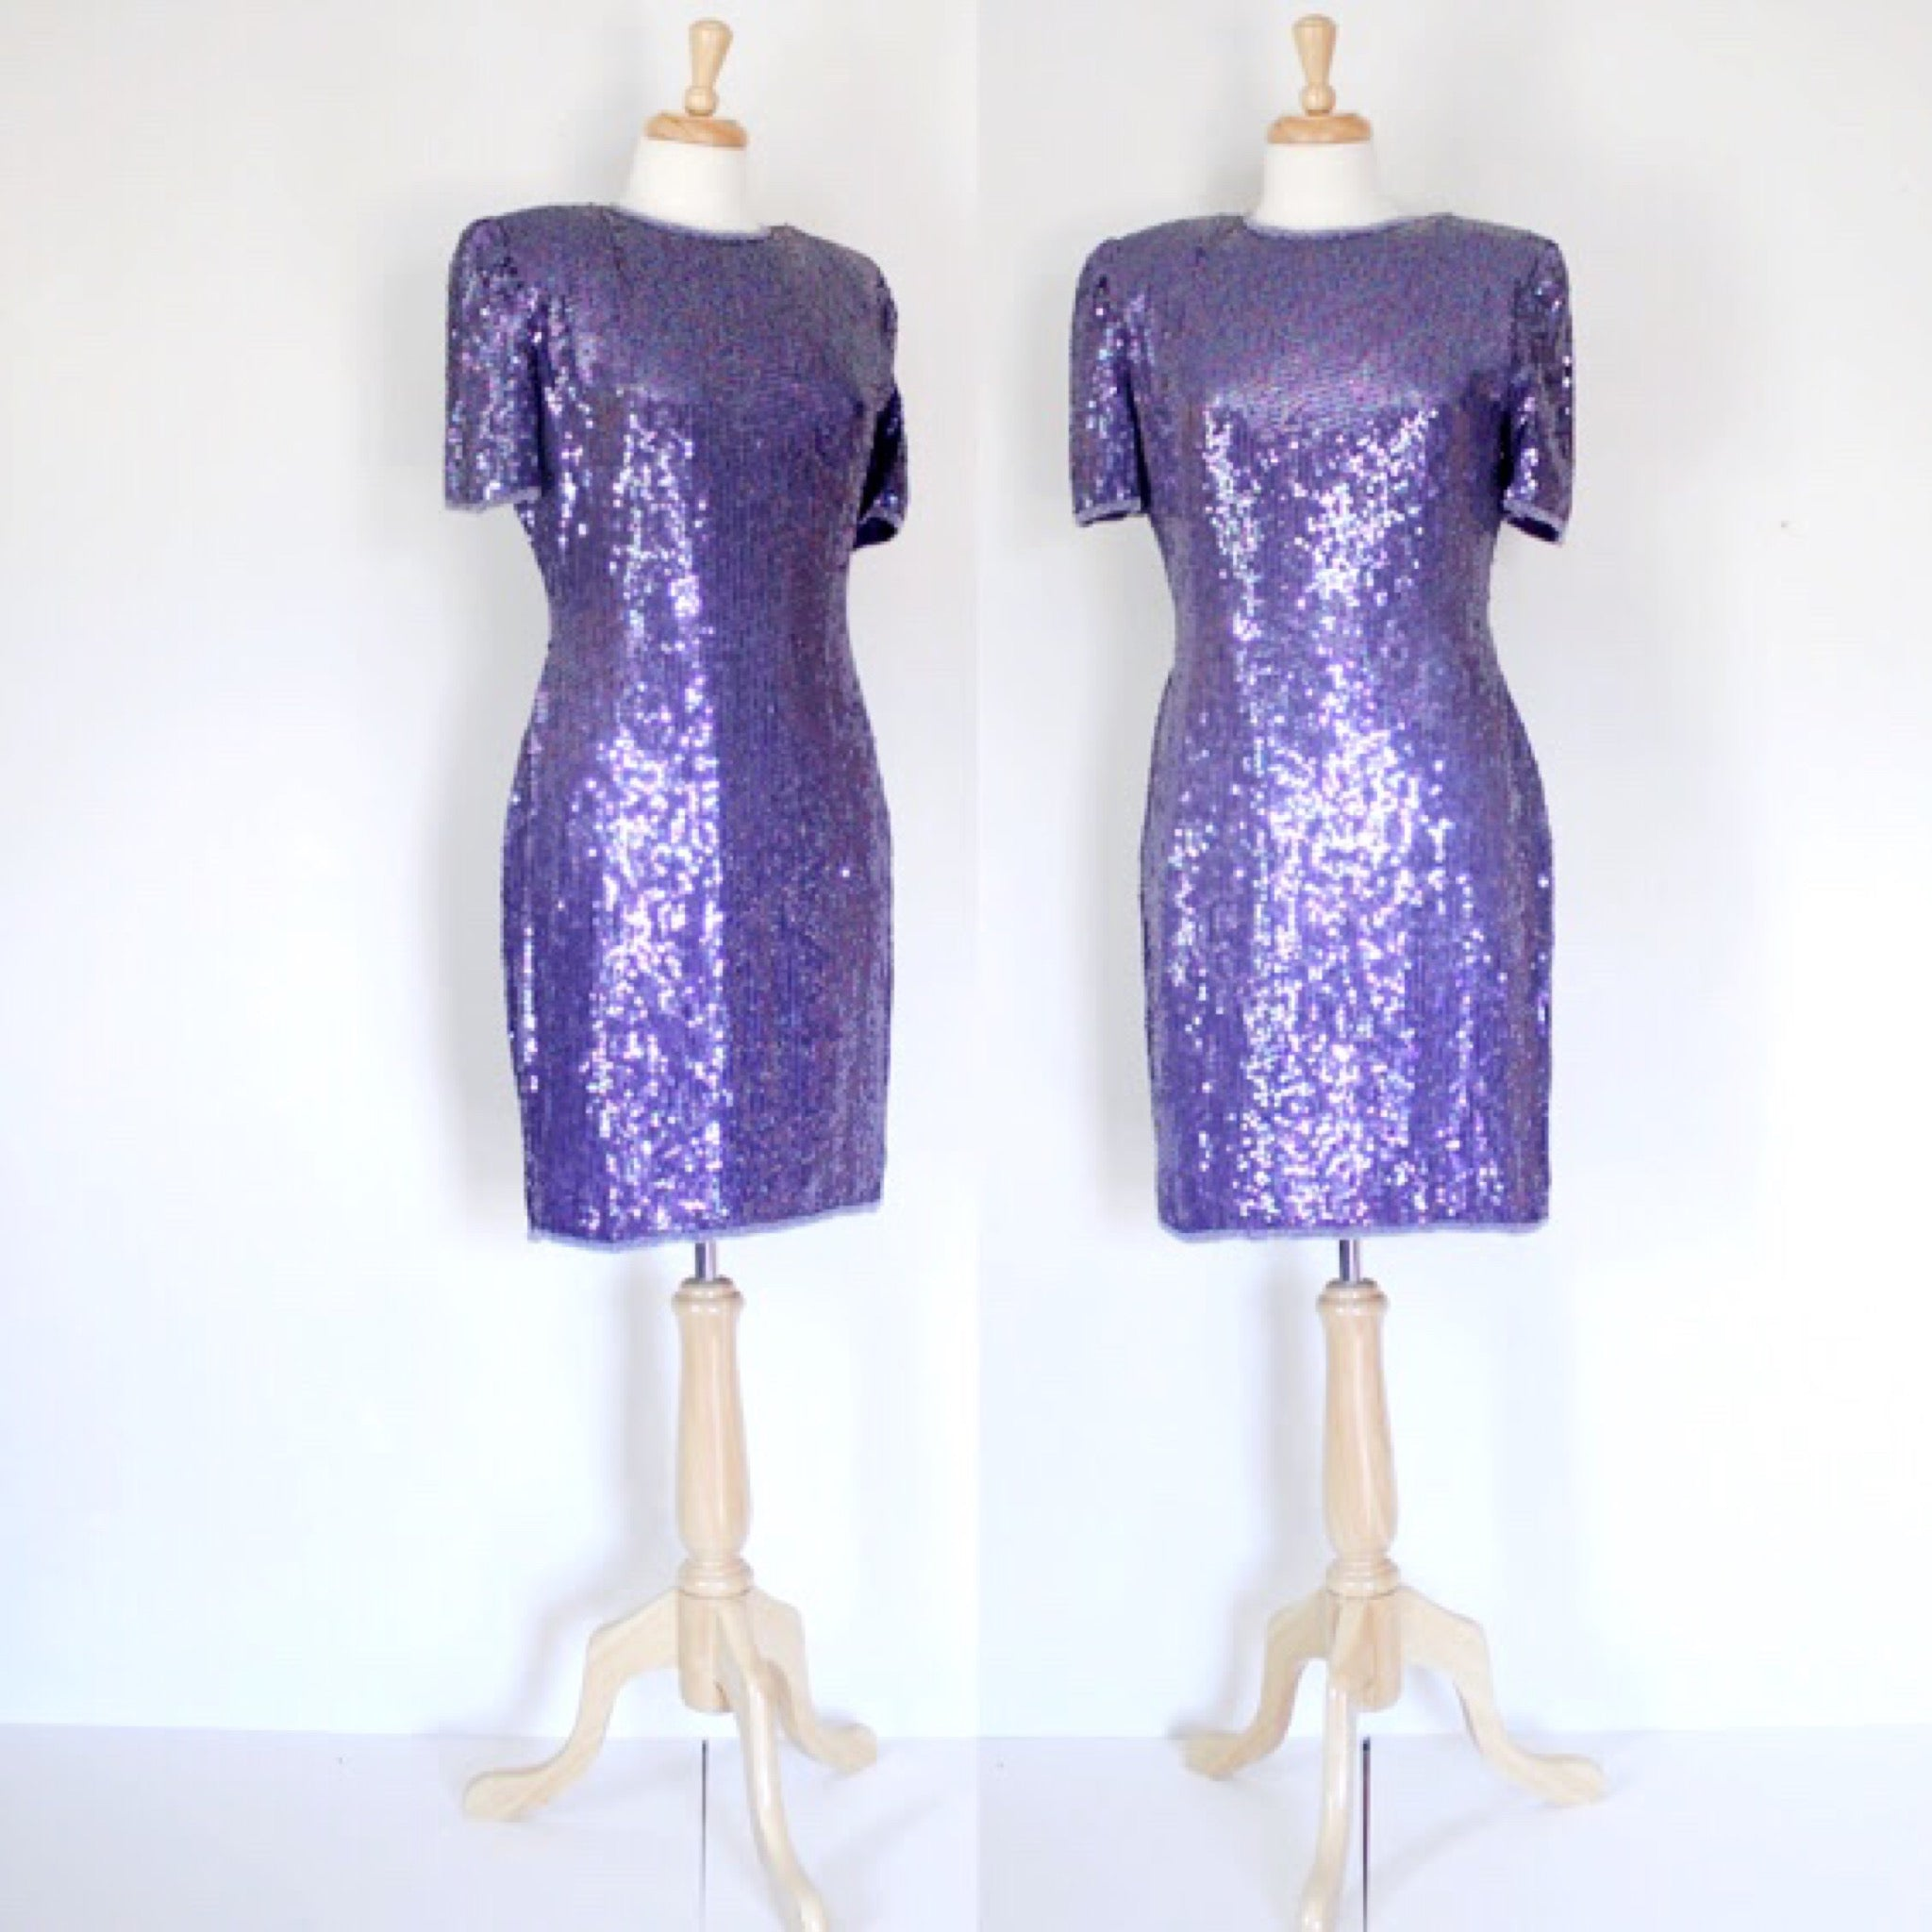 SOLD // 80s Beaded Trophy Dress By Laurence Kazar